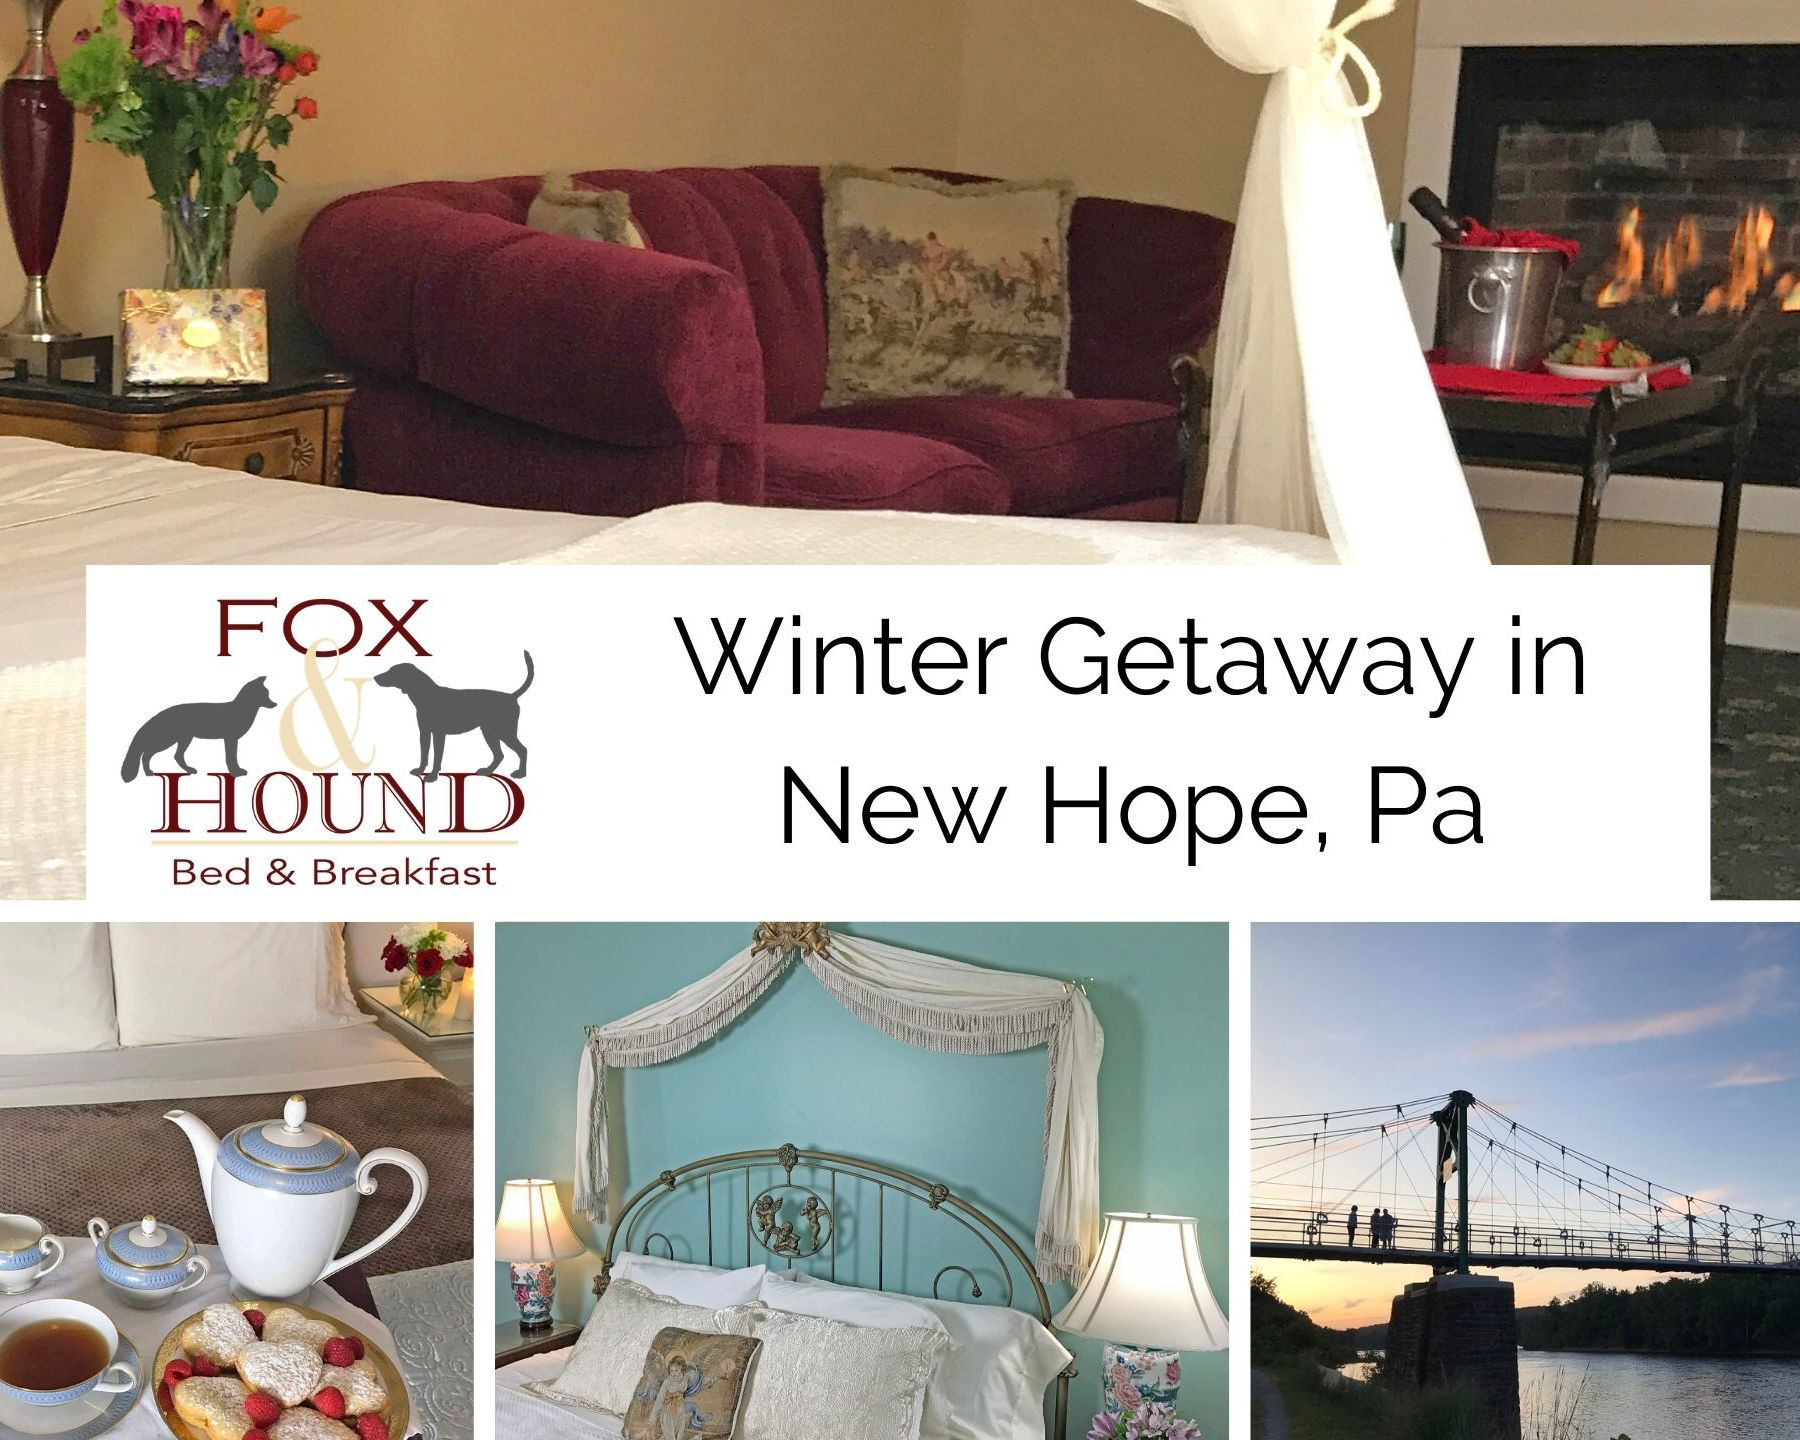 Collage Says Winter Getaway in new hope, pa and also has picture of river walk, view of fireplace from over the bed with champagne on ice